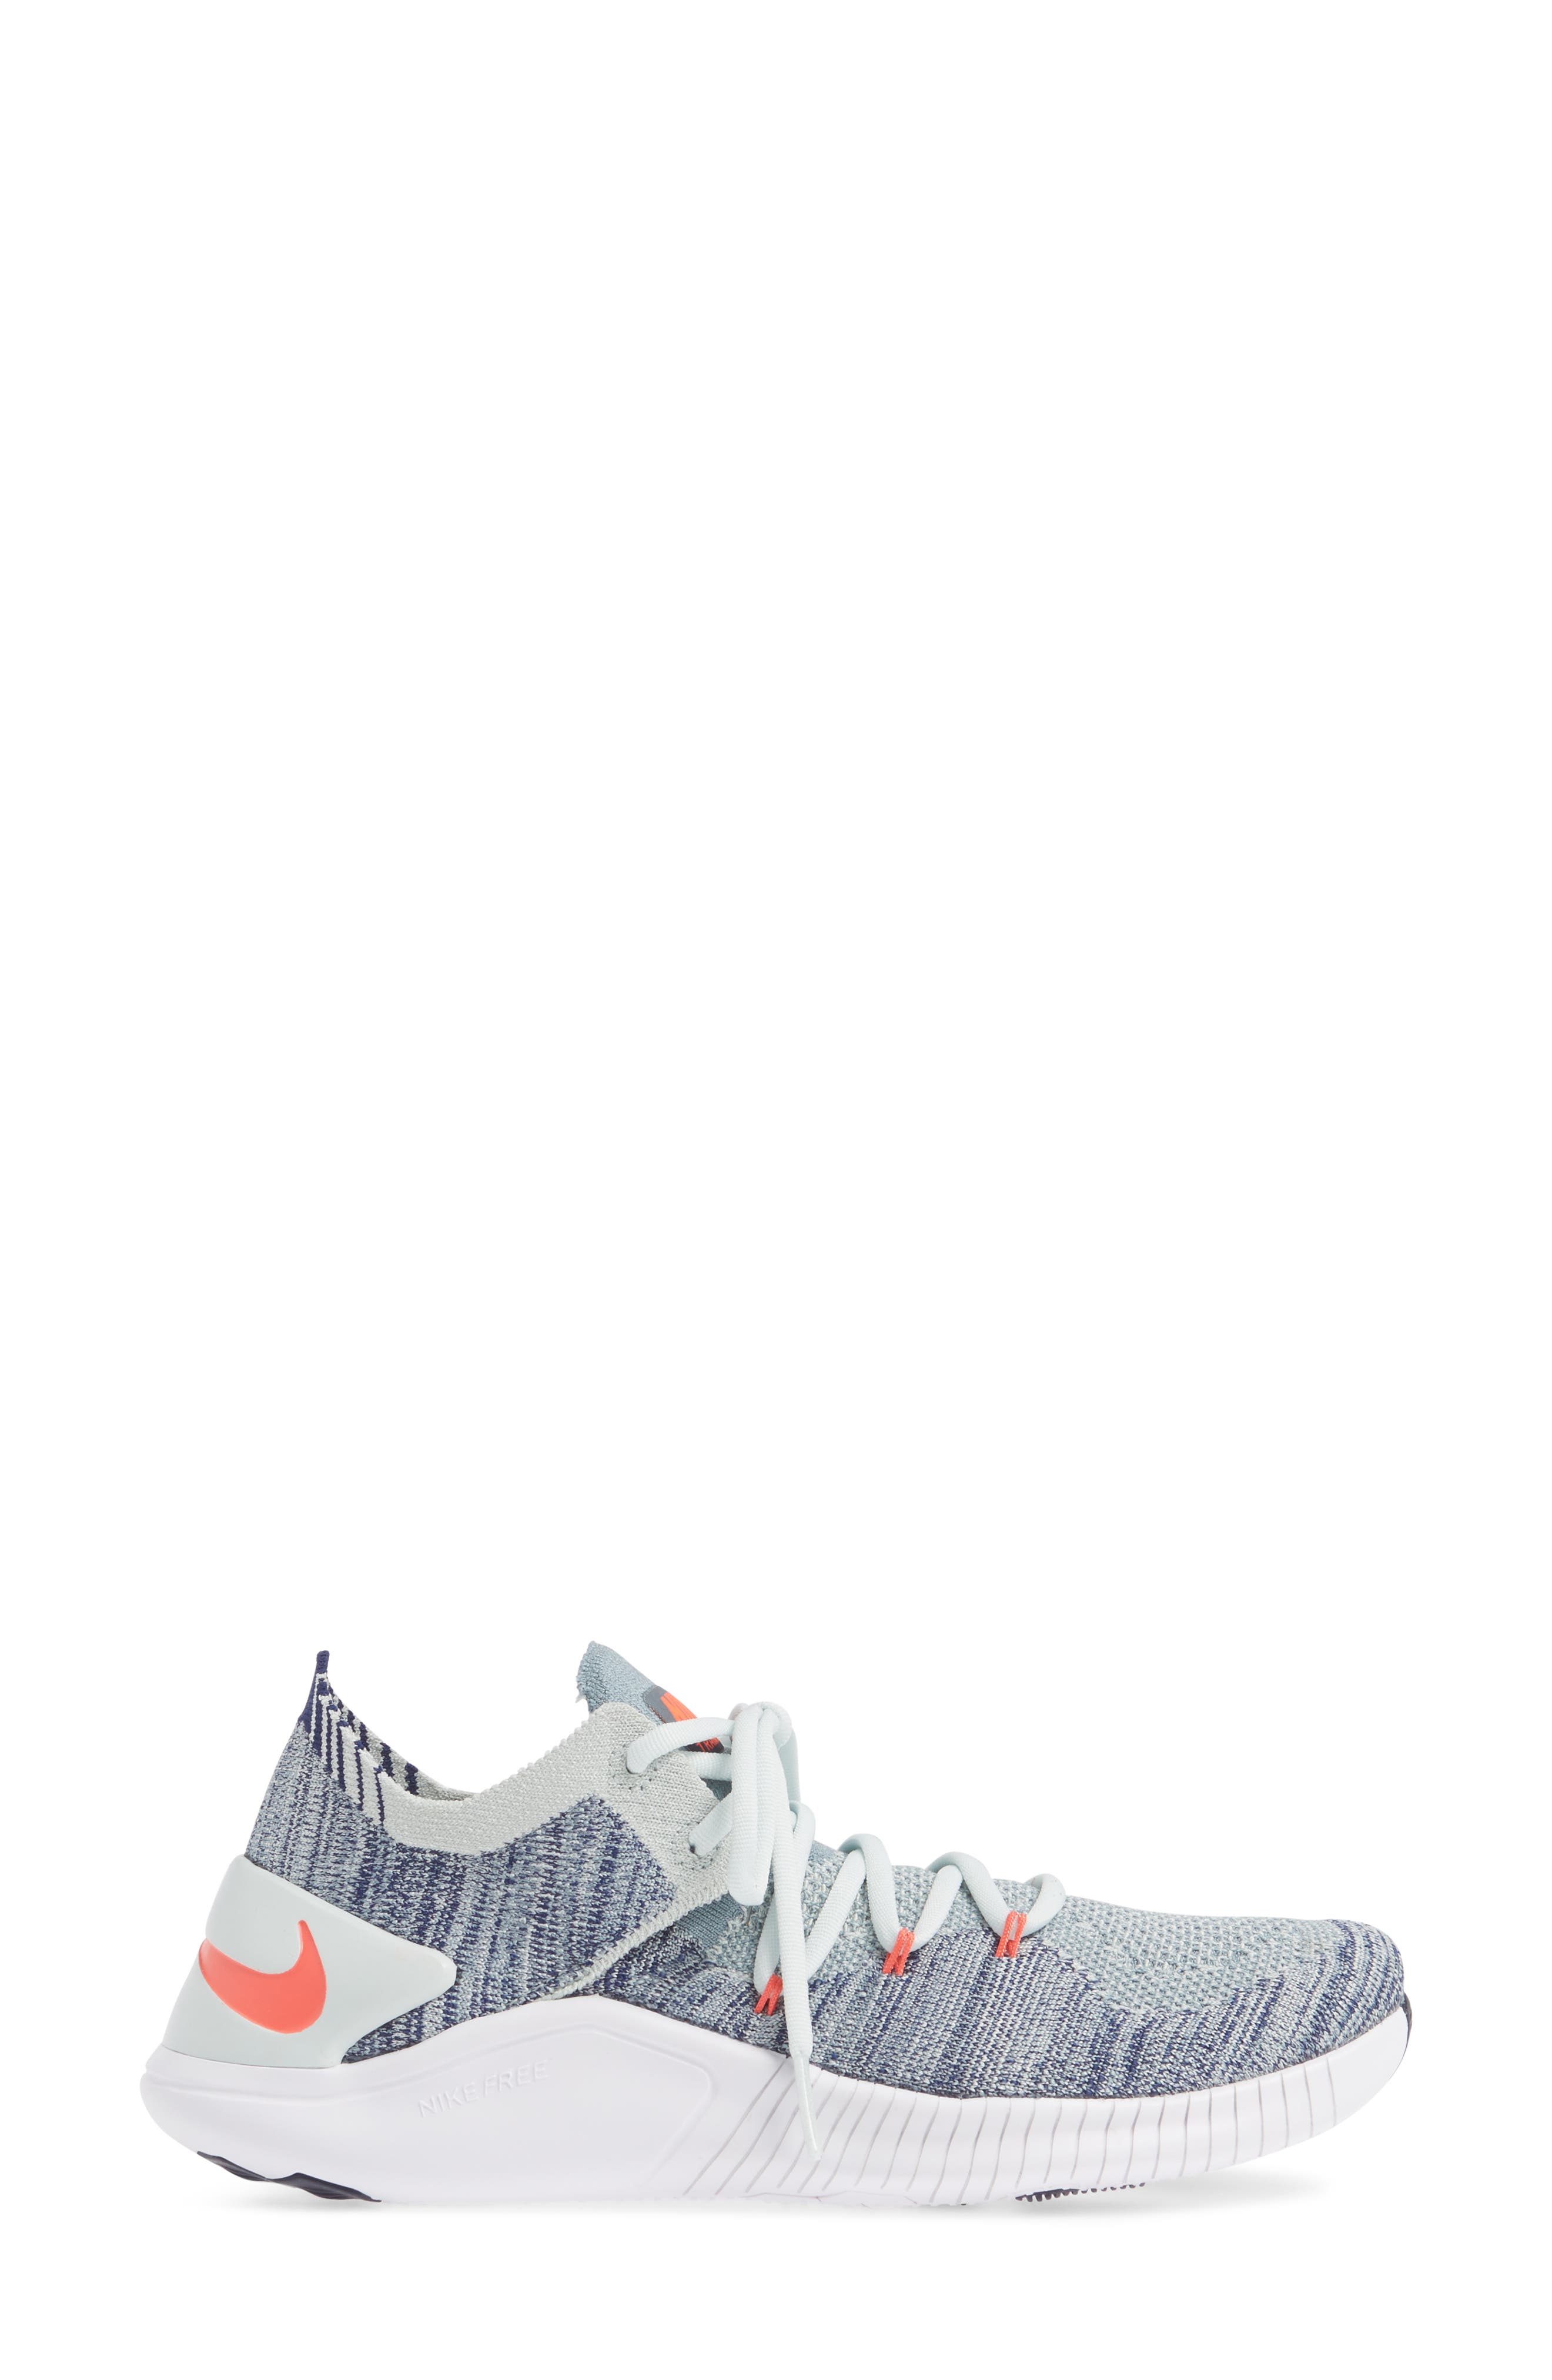 Free TR Flyknit 3 Training Shoe,                             Alternate thumbnail 3, color,                             BARELY GREY/ EMBER GLOW/ BLUE